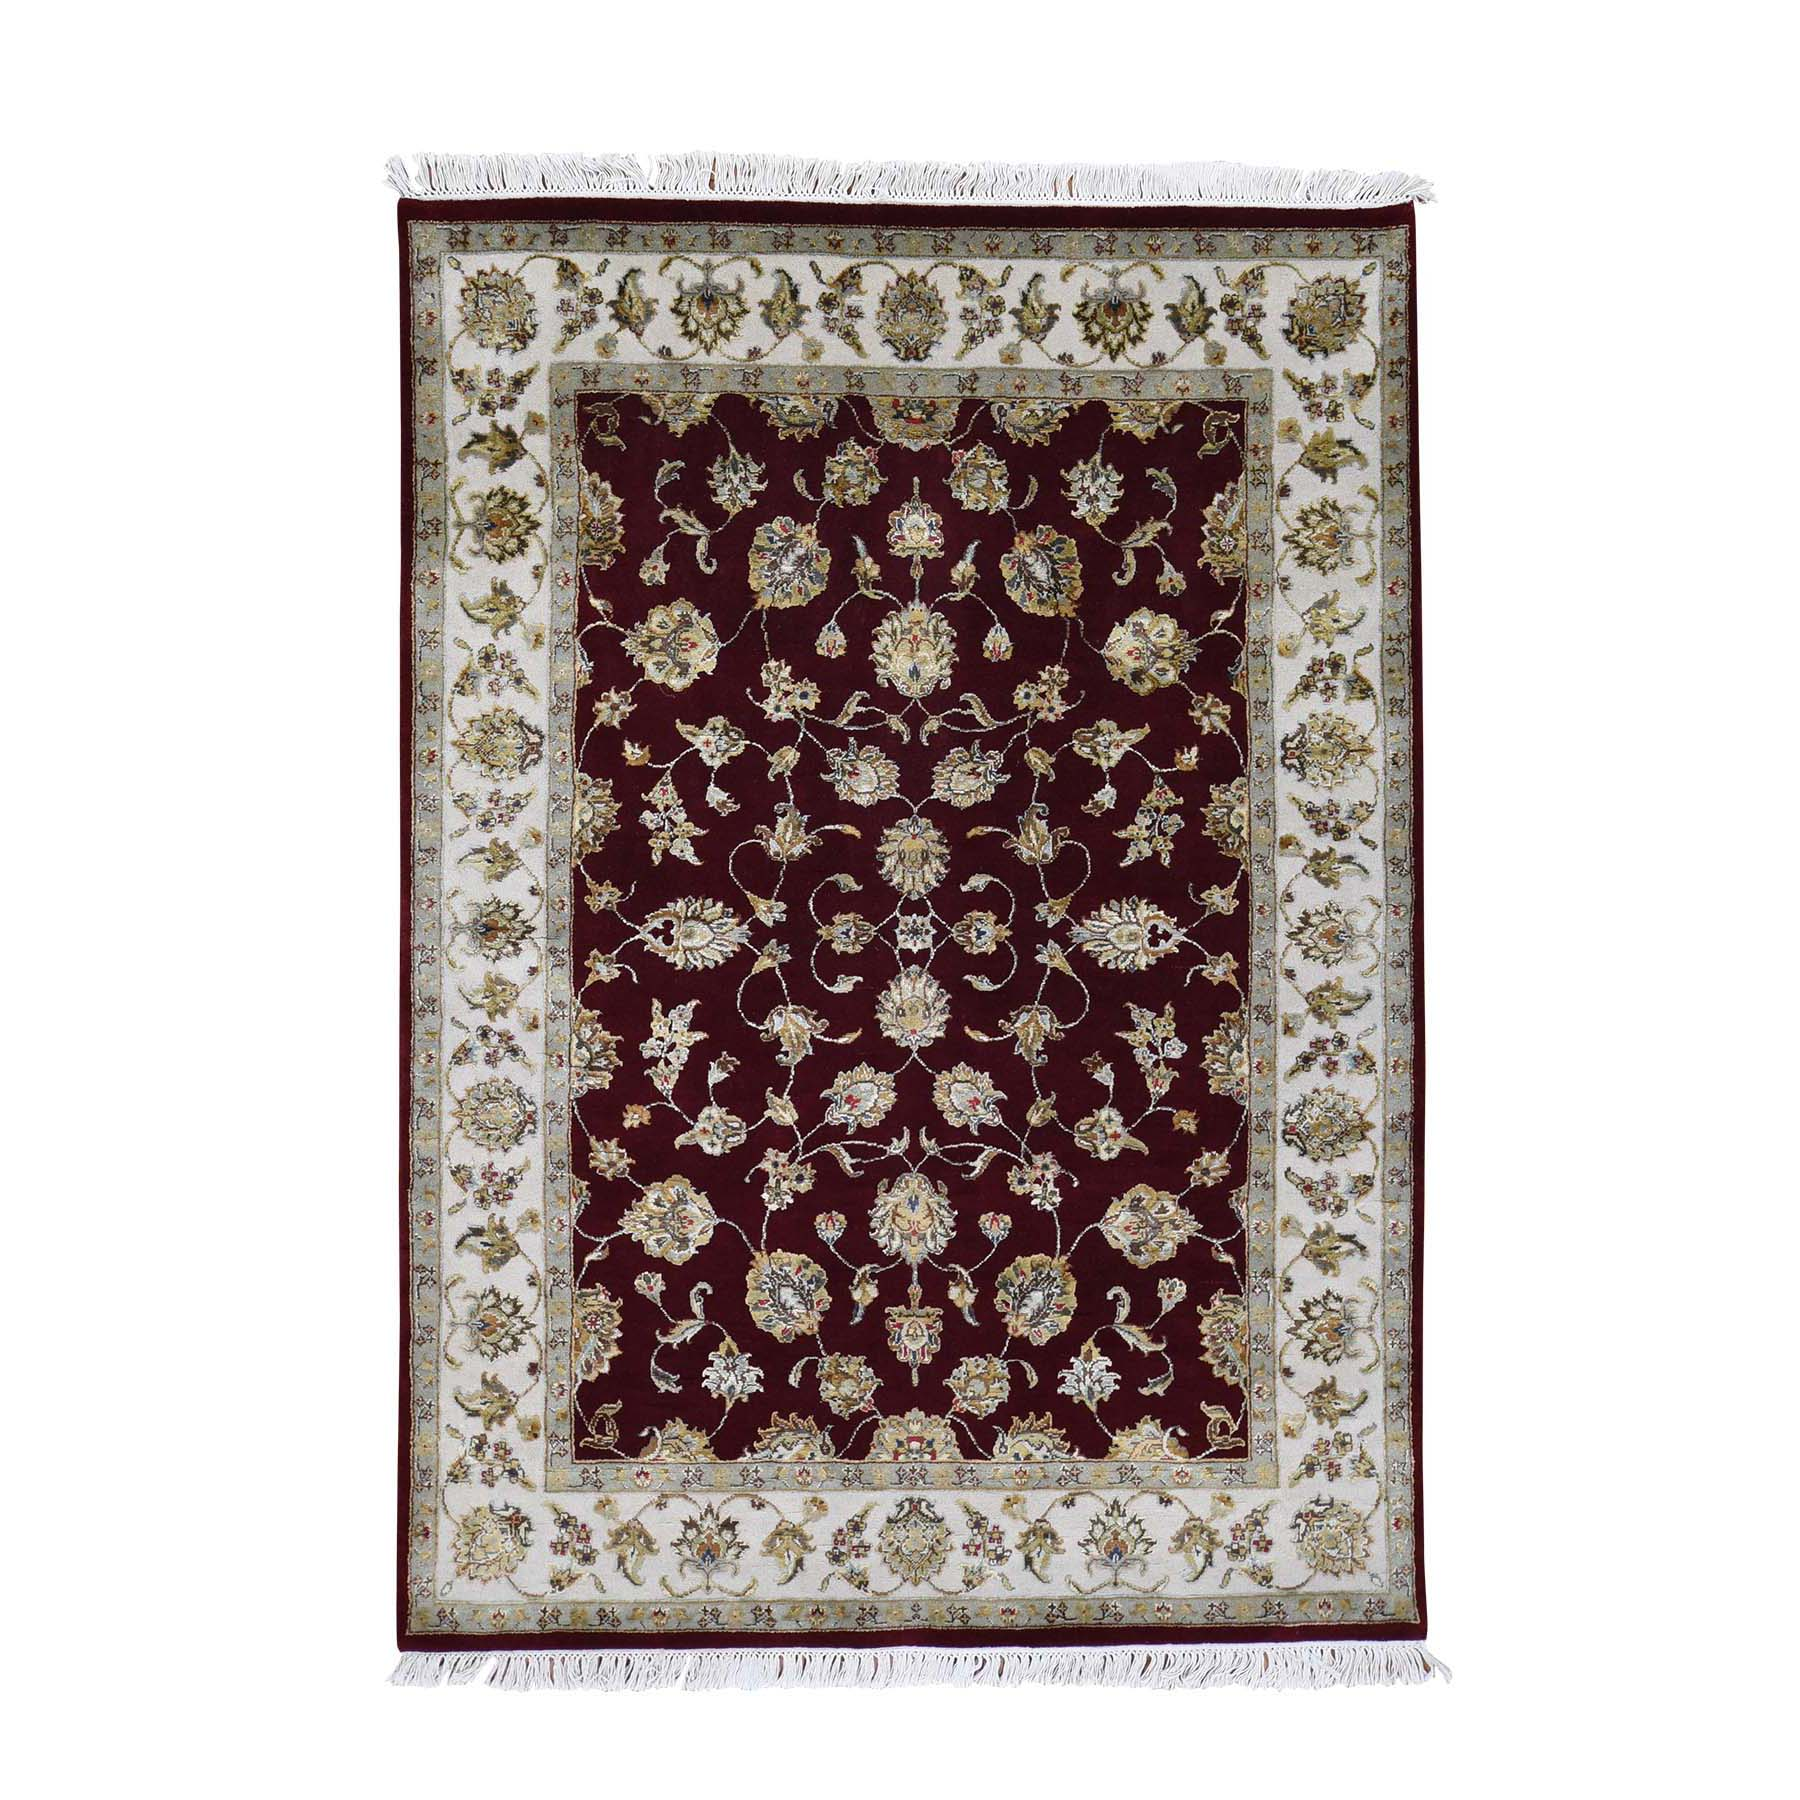 "5'1""x7'1"" Rajasthan  Wool And Silk Hand-Knotted Oriental Rug"